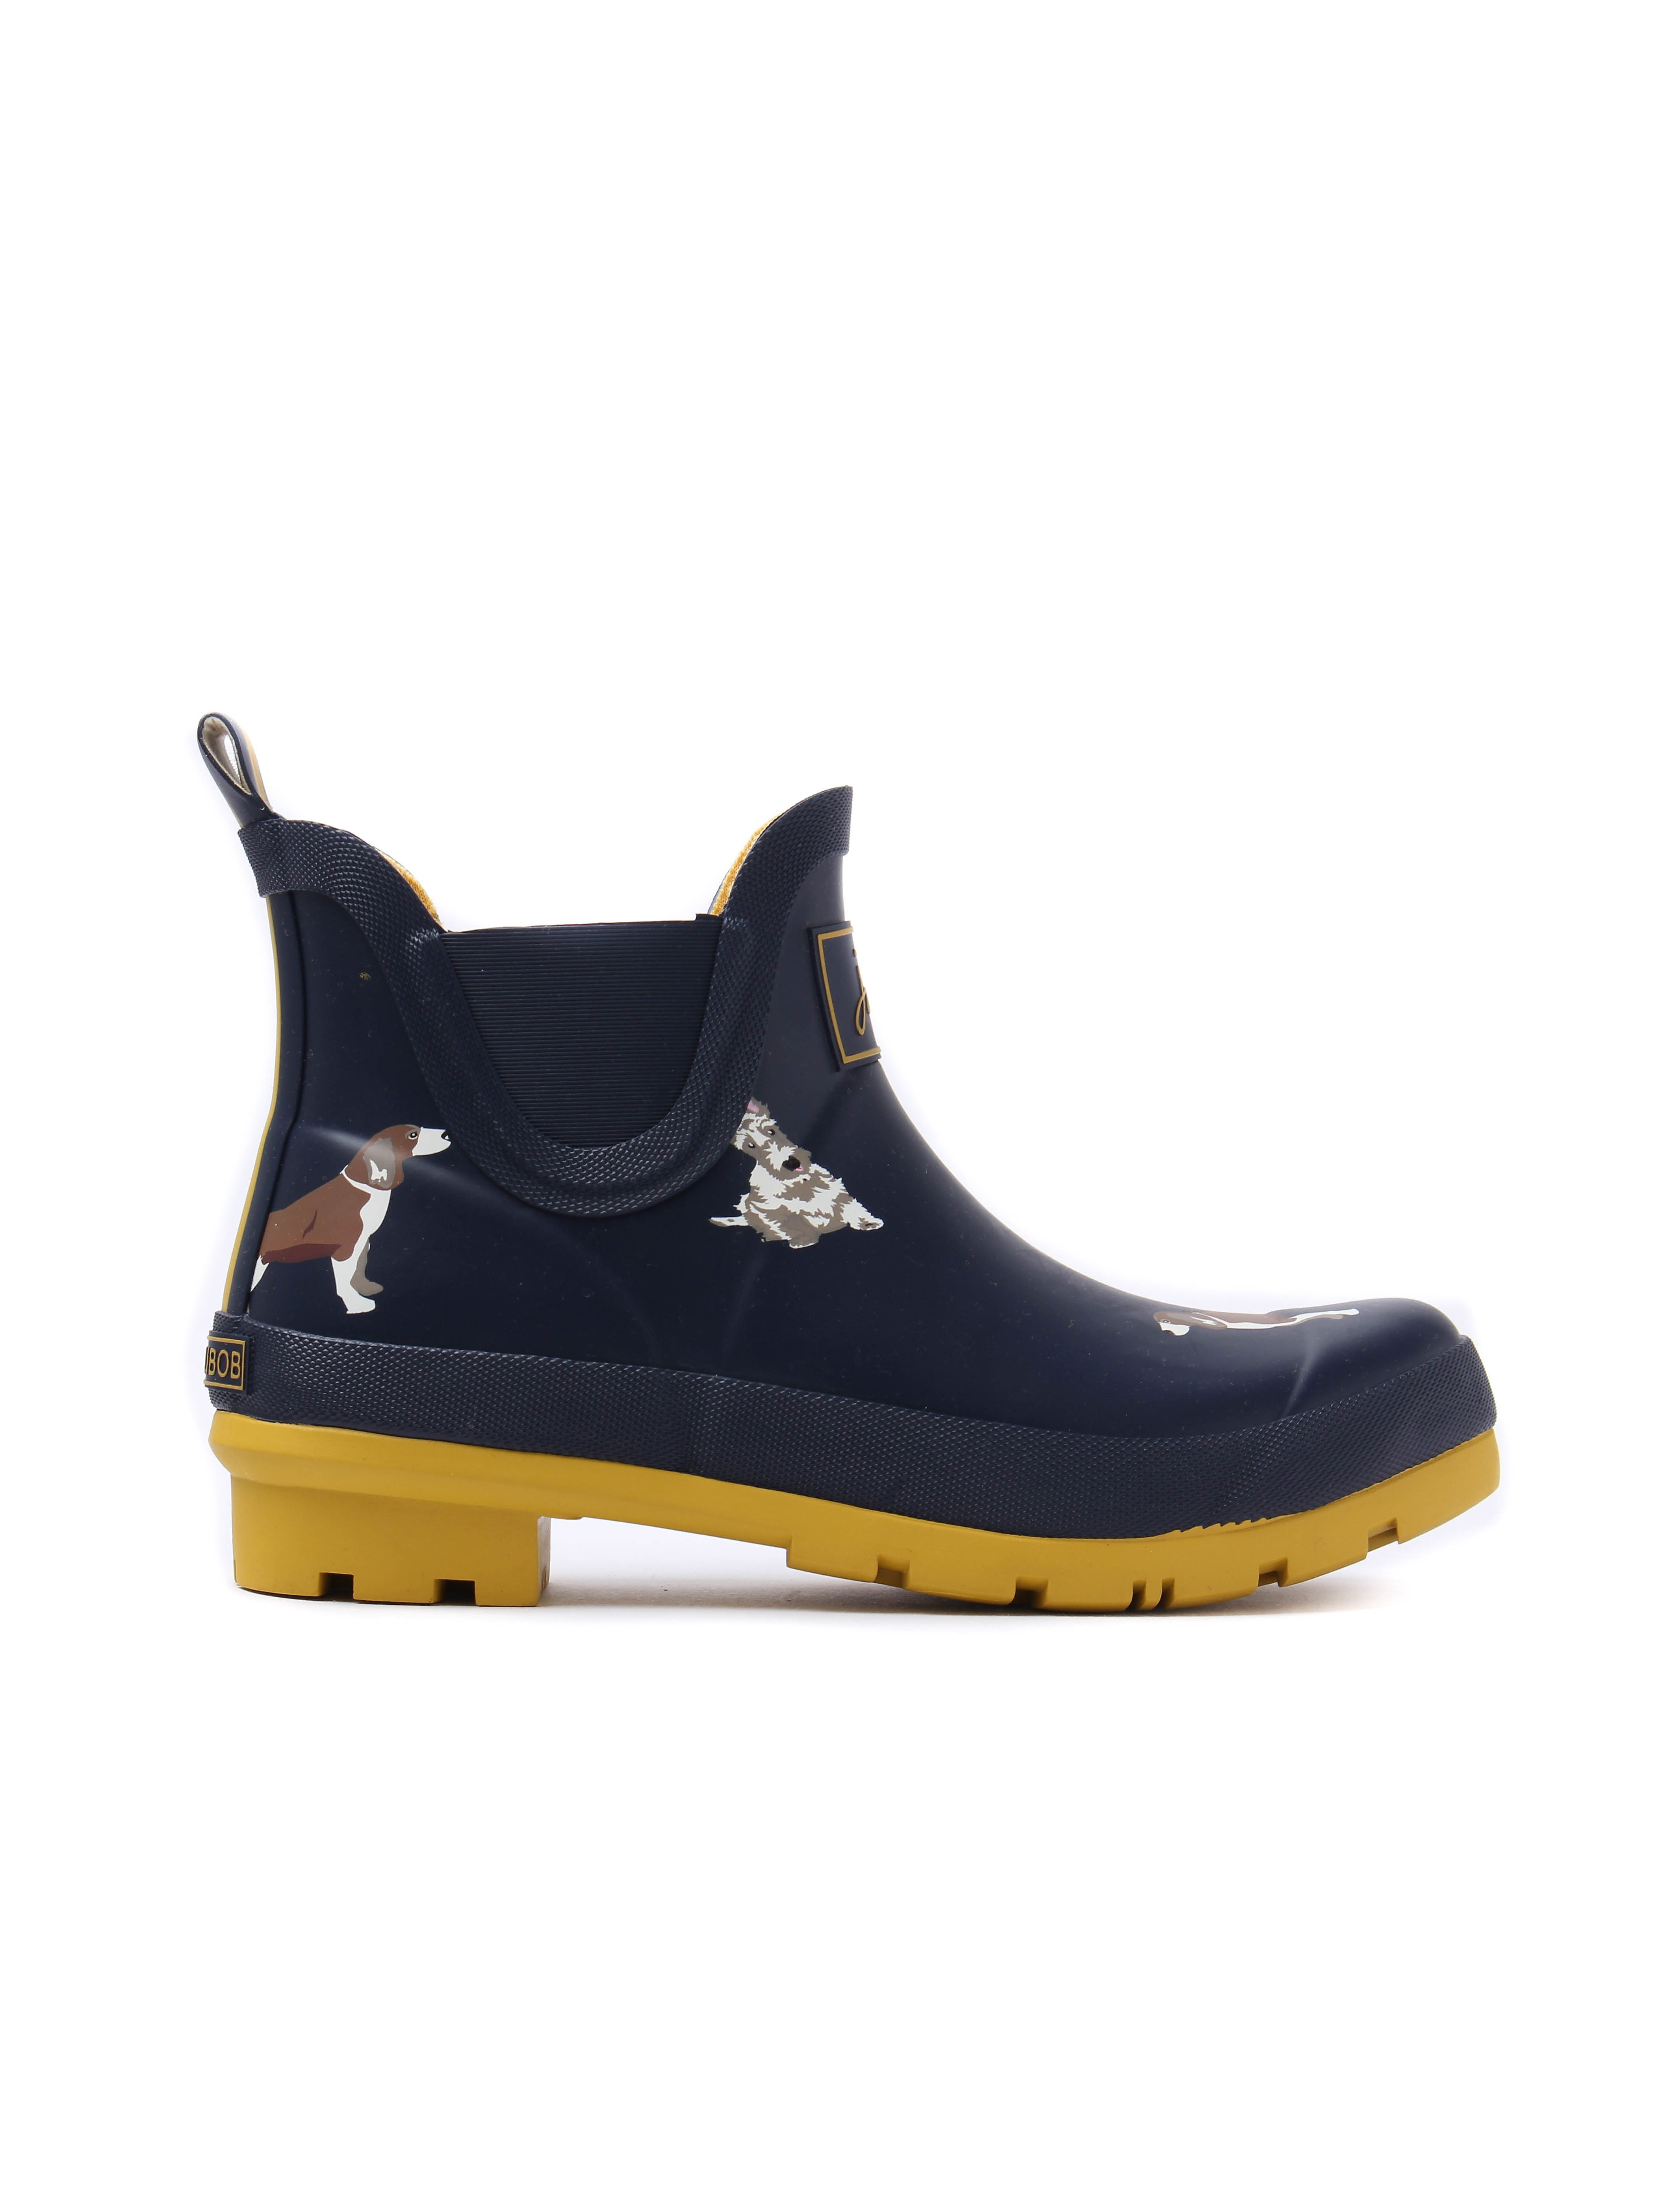 Joules Women's Wellibob Fido Dog Rubber Ankle Wellington Boots - French Navy